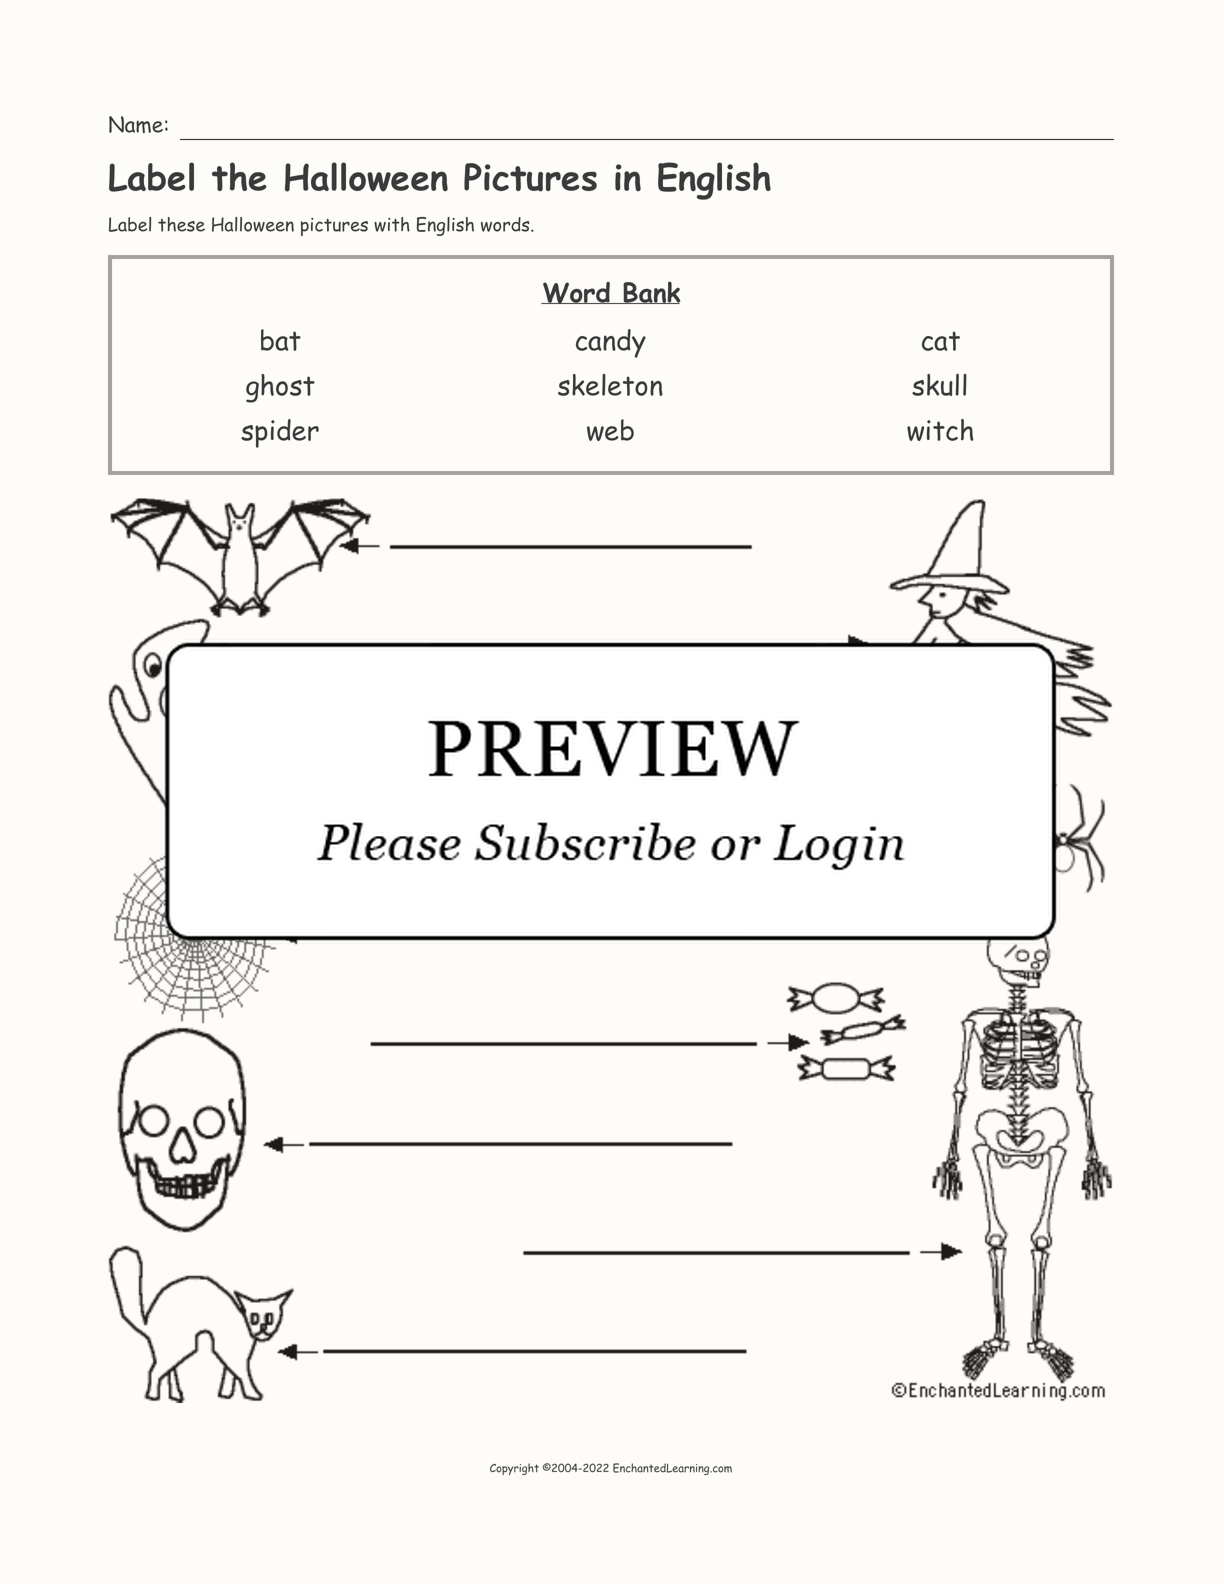 Label The Halloween Words In English